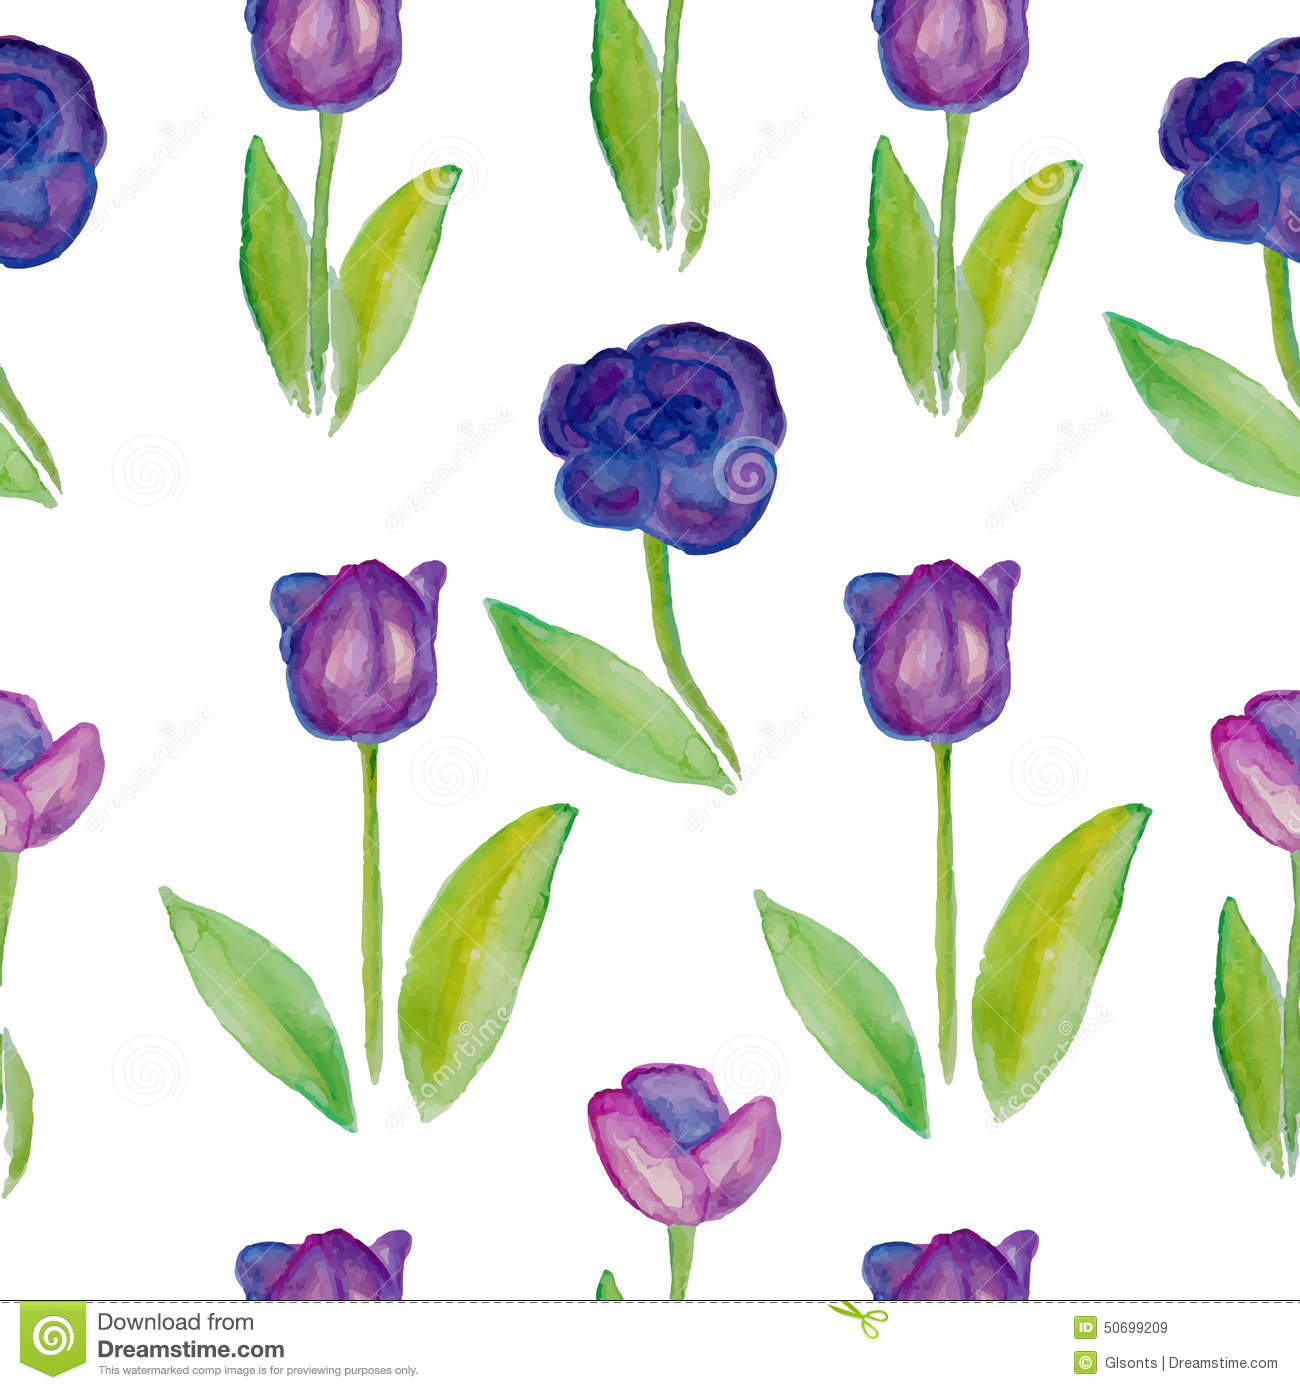 Garden floral seamless pattern on purple background watercolor vector - Floral Seamless Pattern Tulips Violet Flowers With Green